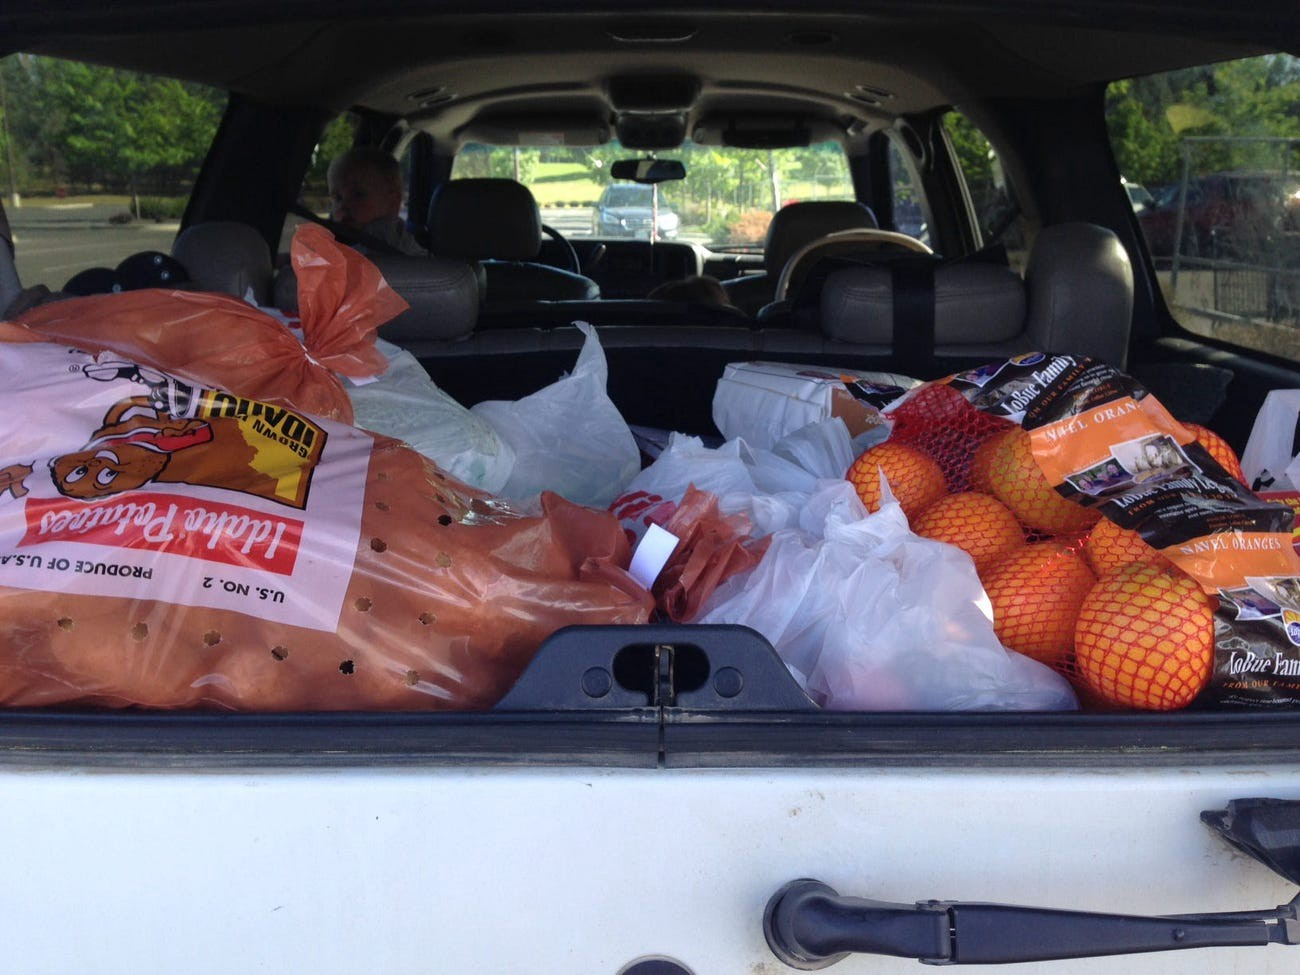 A car trunk full of groceries.